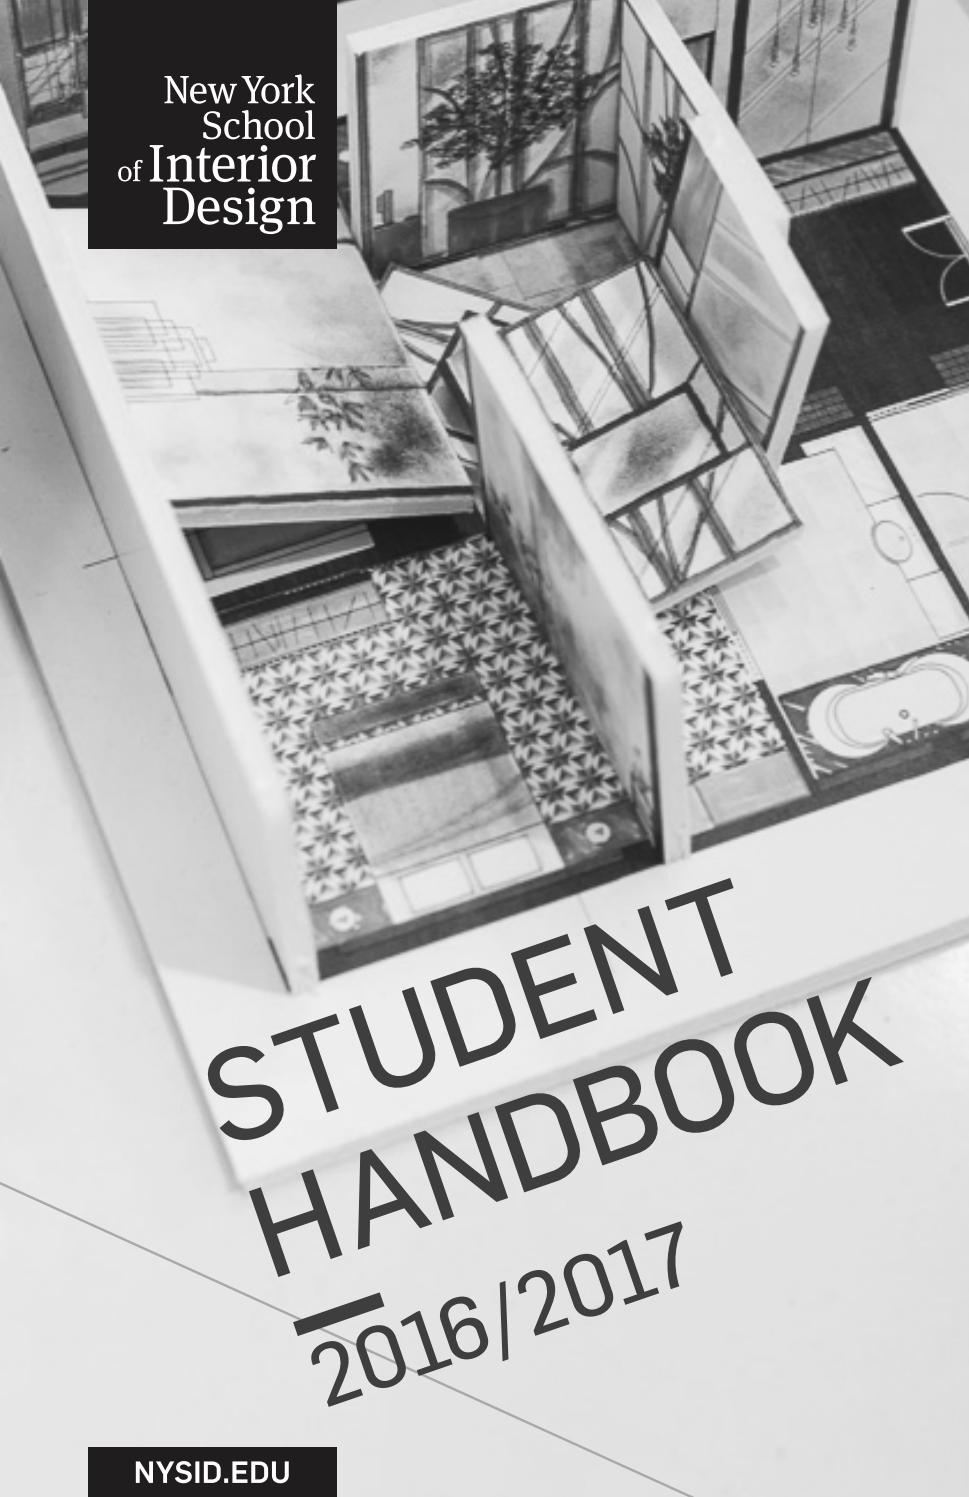 Nysid Student Handbook 2016 2017 By New York School Of Interior Design Issuu